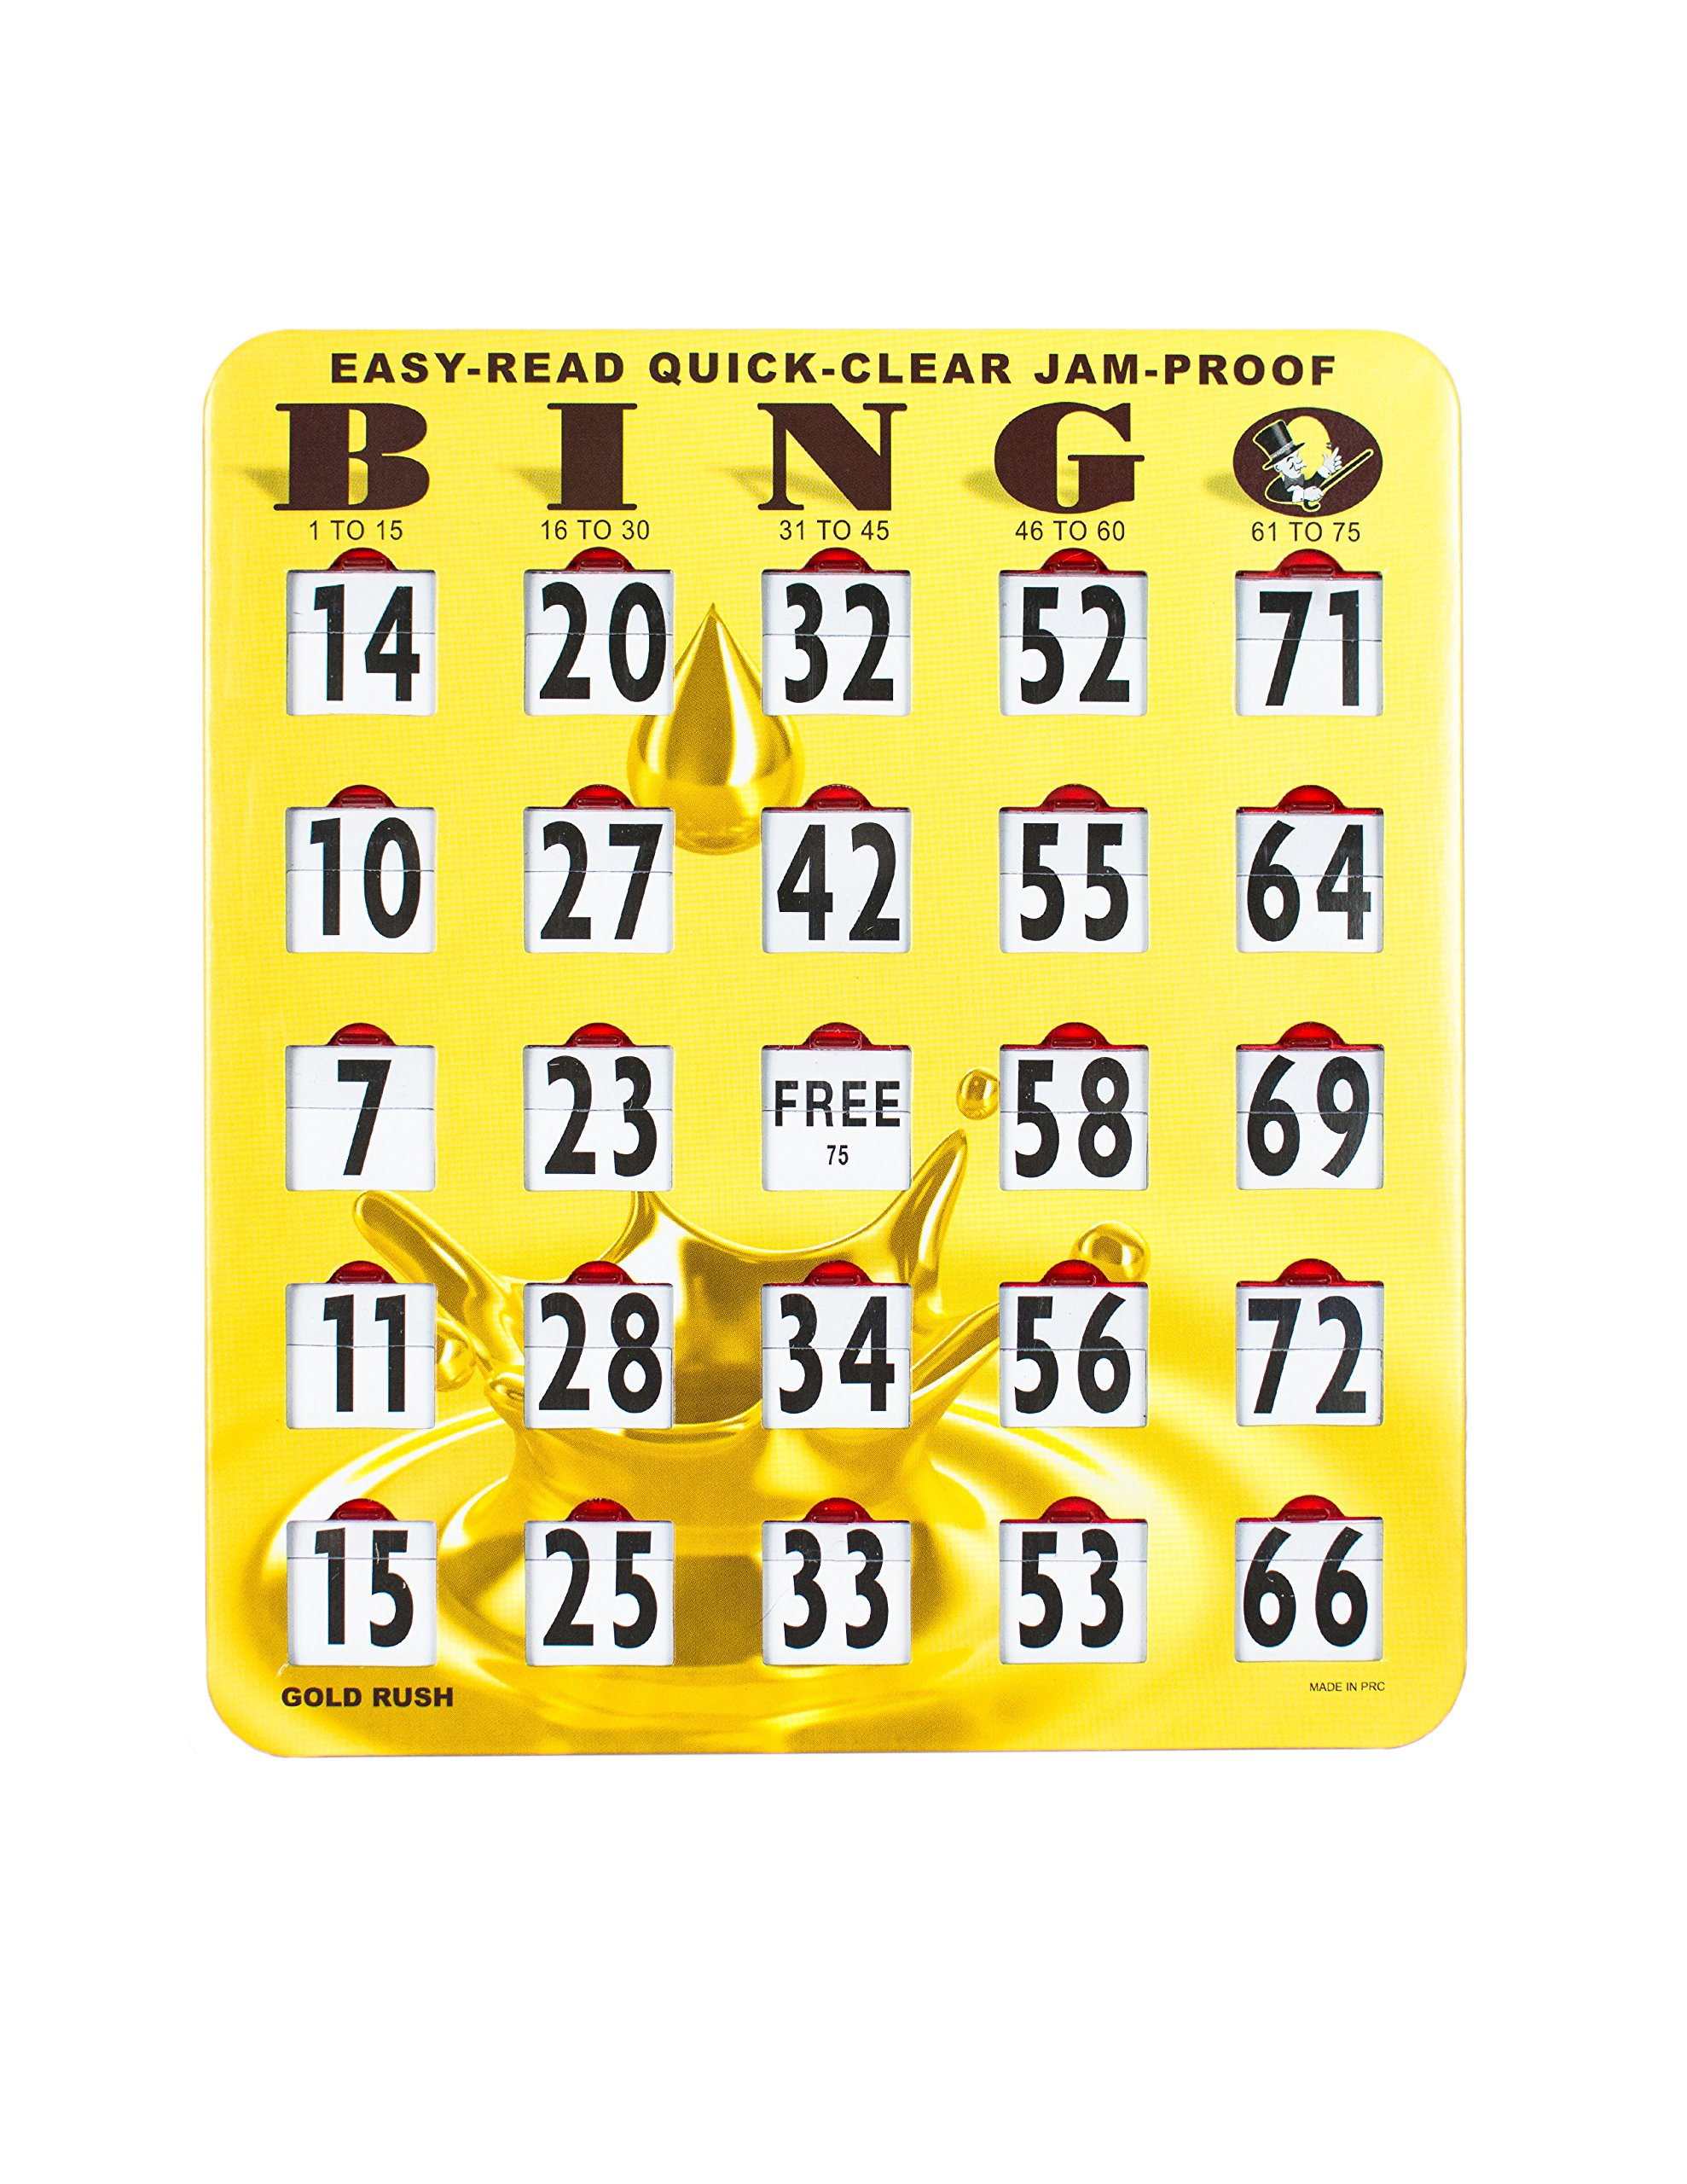 Easy Read Quick Clear Jam Proof Bingo Shutter Cards, 50 Count by Mr. Chips (Image #2)